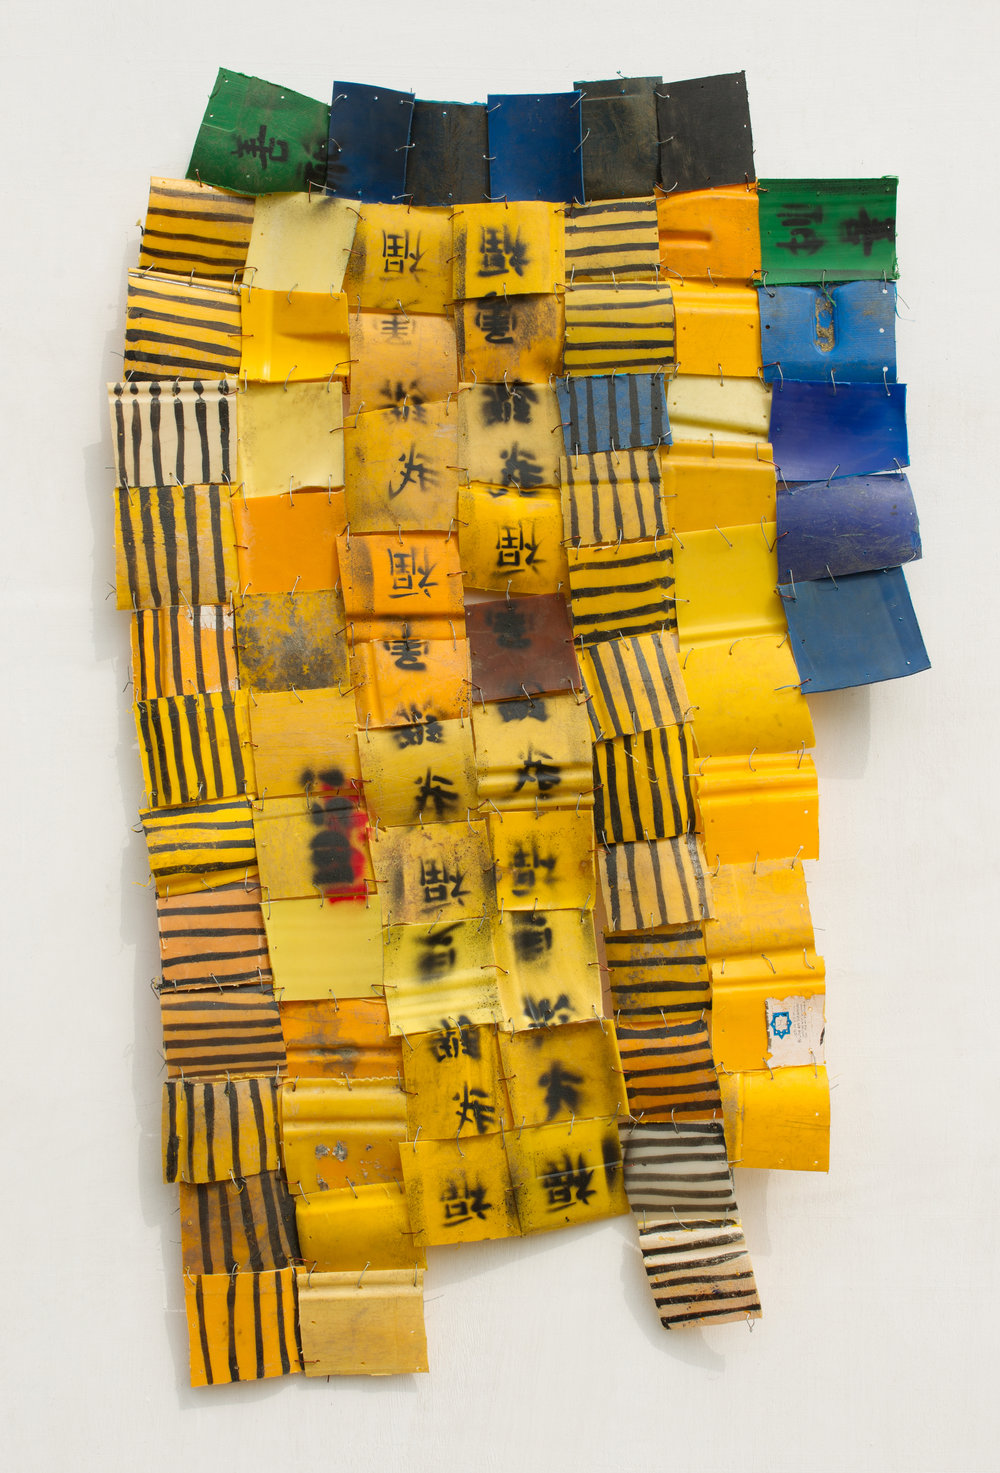 Serge Attukwei Clottey, The night before, 2016, plastics, wire and oil paint.